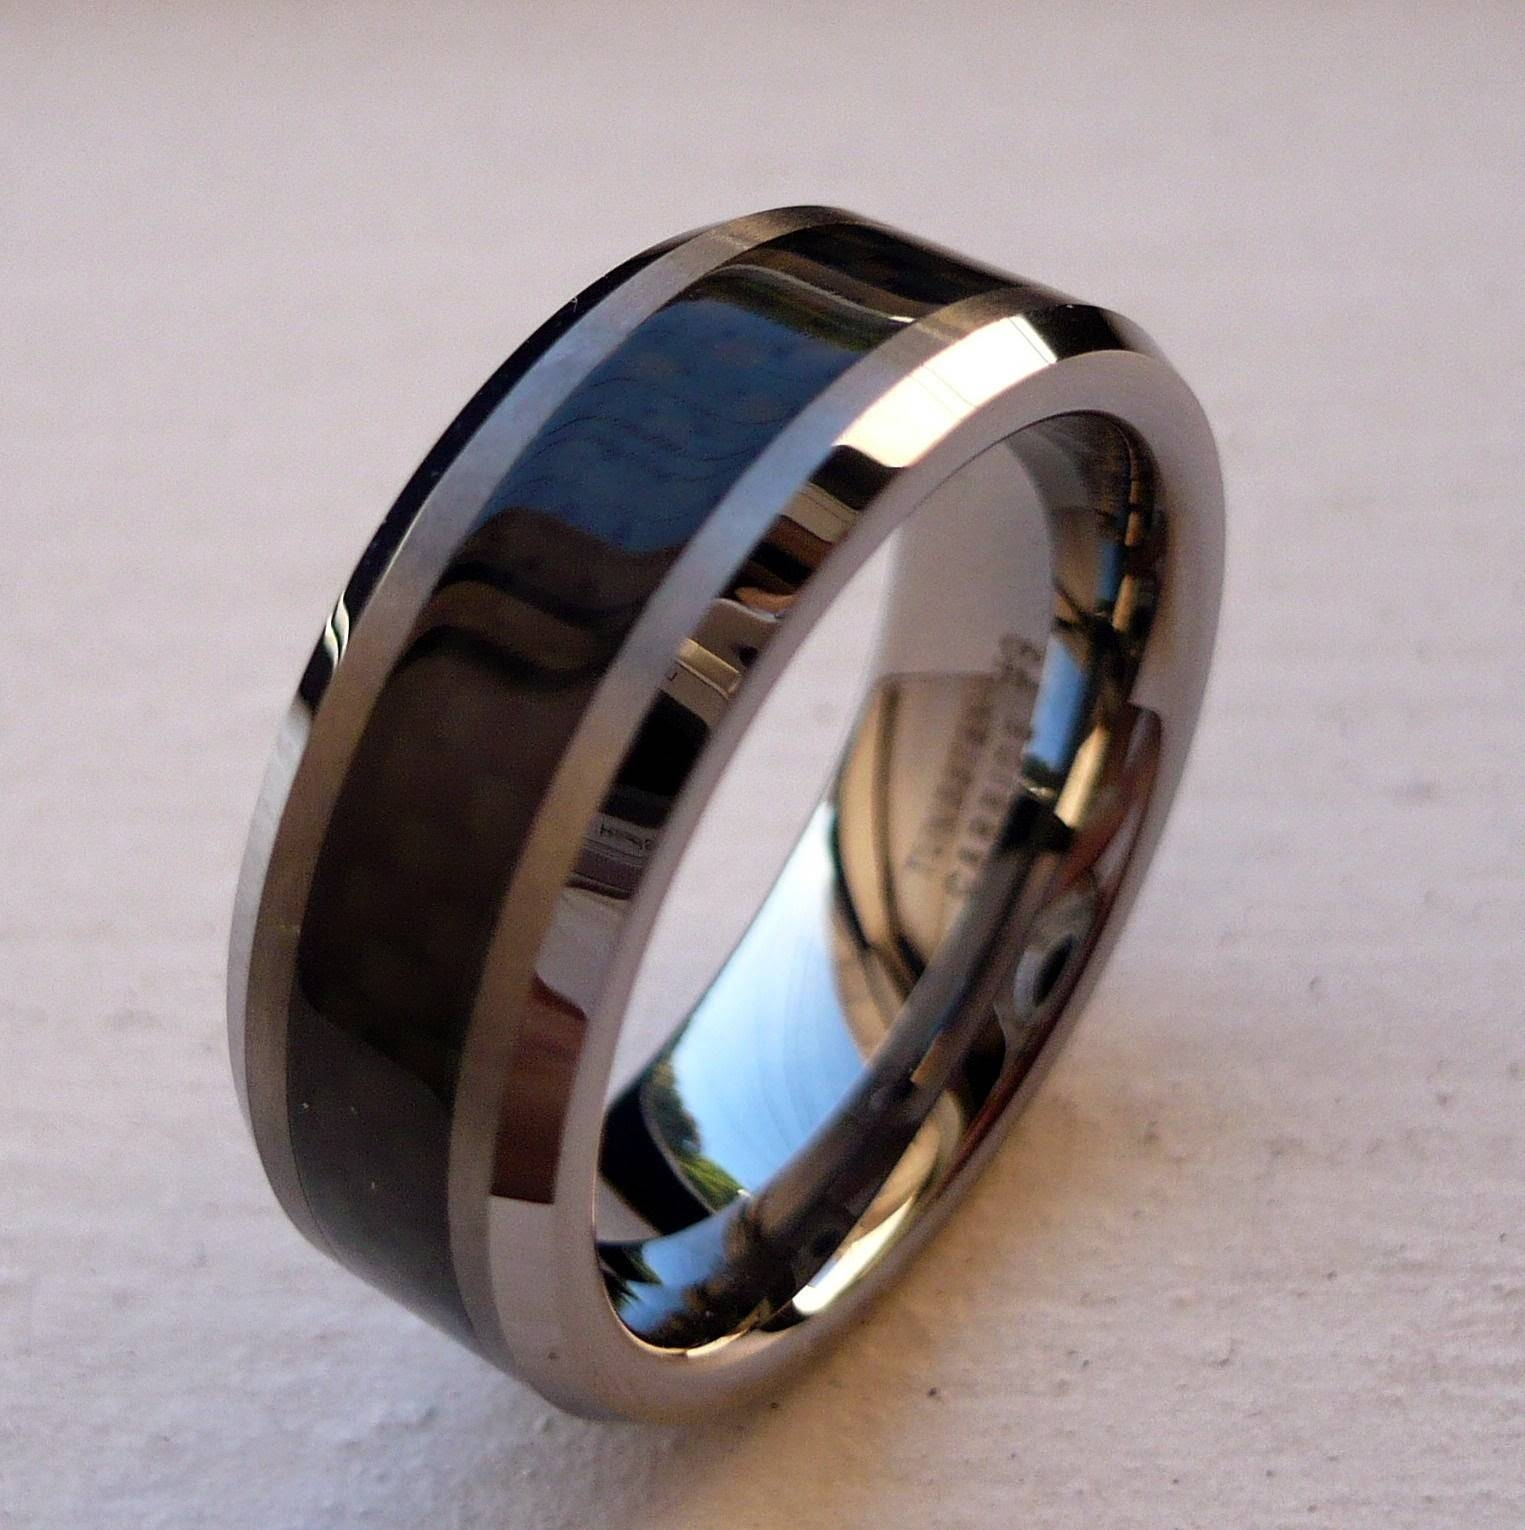 Some Designs Of Black Tungsten Wedding Bands | Wedding Ideas In Unique Tungsten Wedding Rings (View 10 of 15)